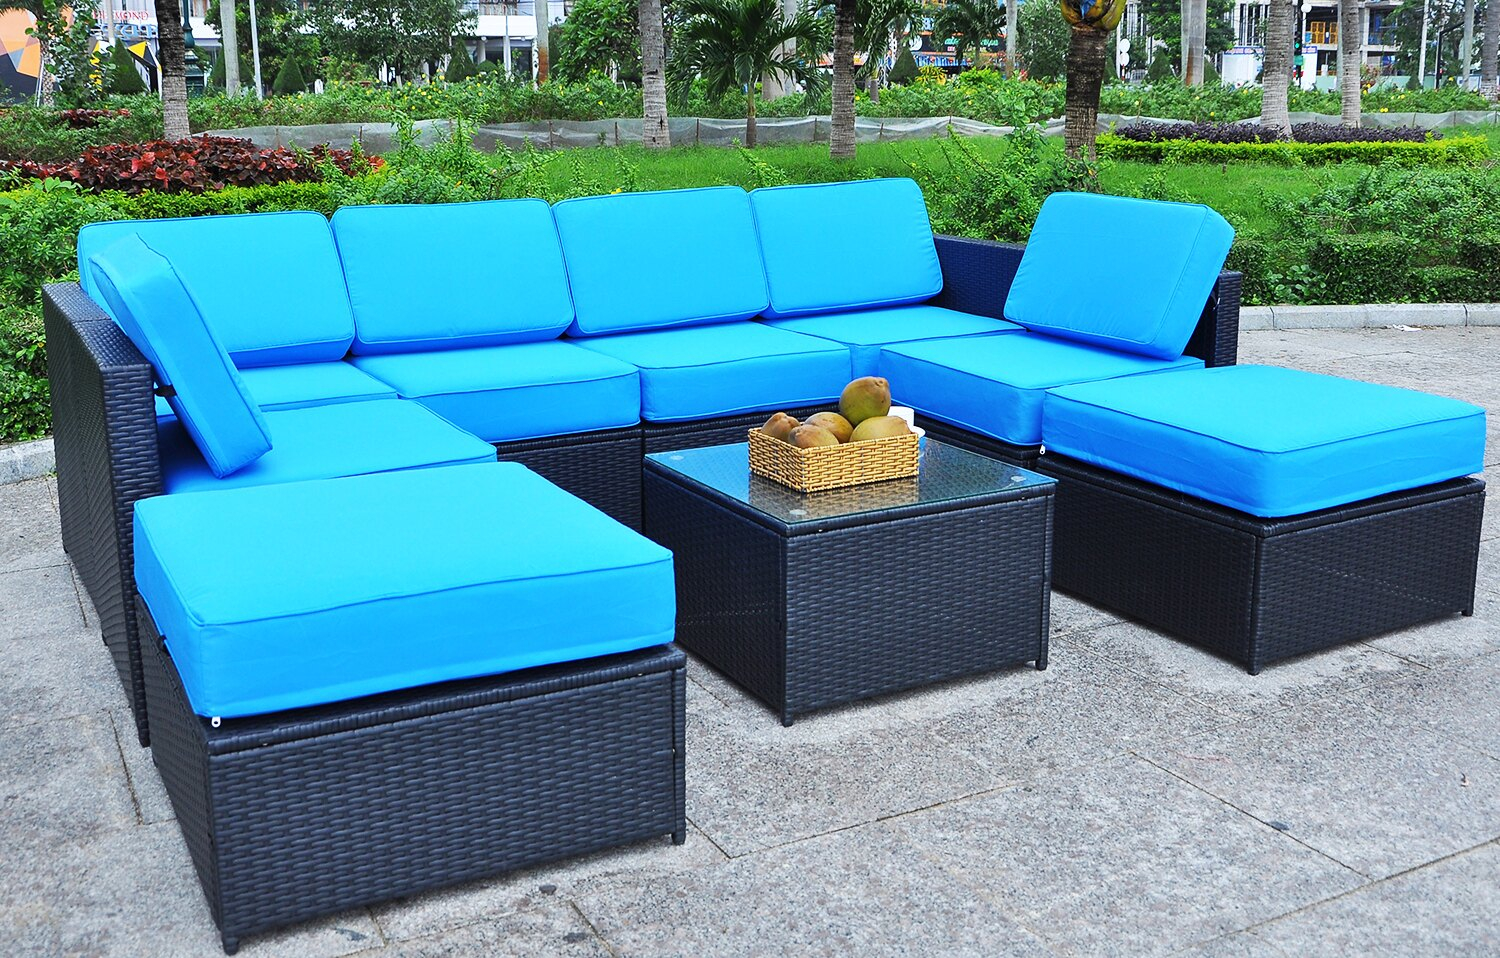 Mcombo Black Wicker Patio Sofa Steel Outdoor Patio Furniture Sectional All Weather Light Weight Conversation Set With 512thickness Cushions inside dimensions 1500 X 958